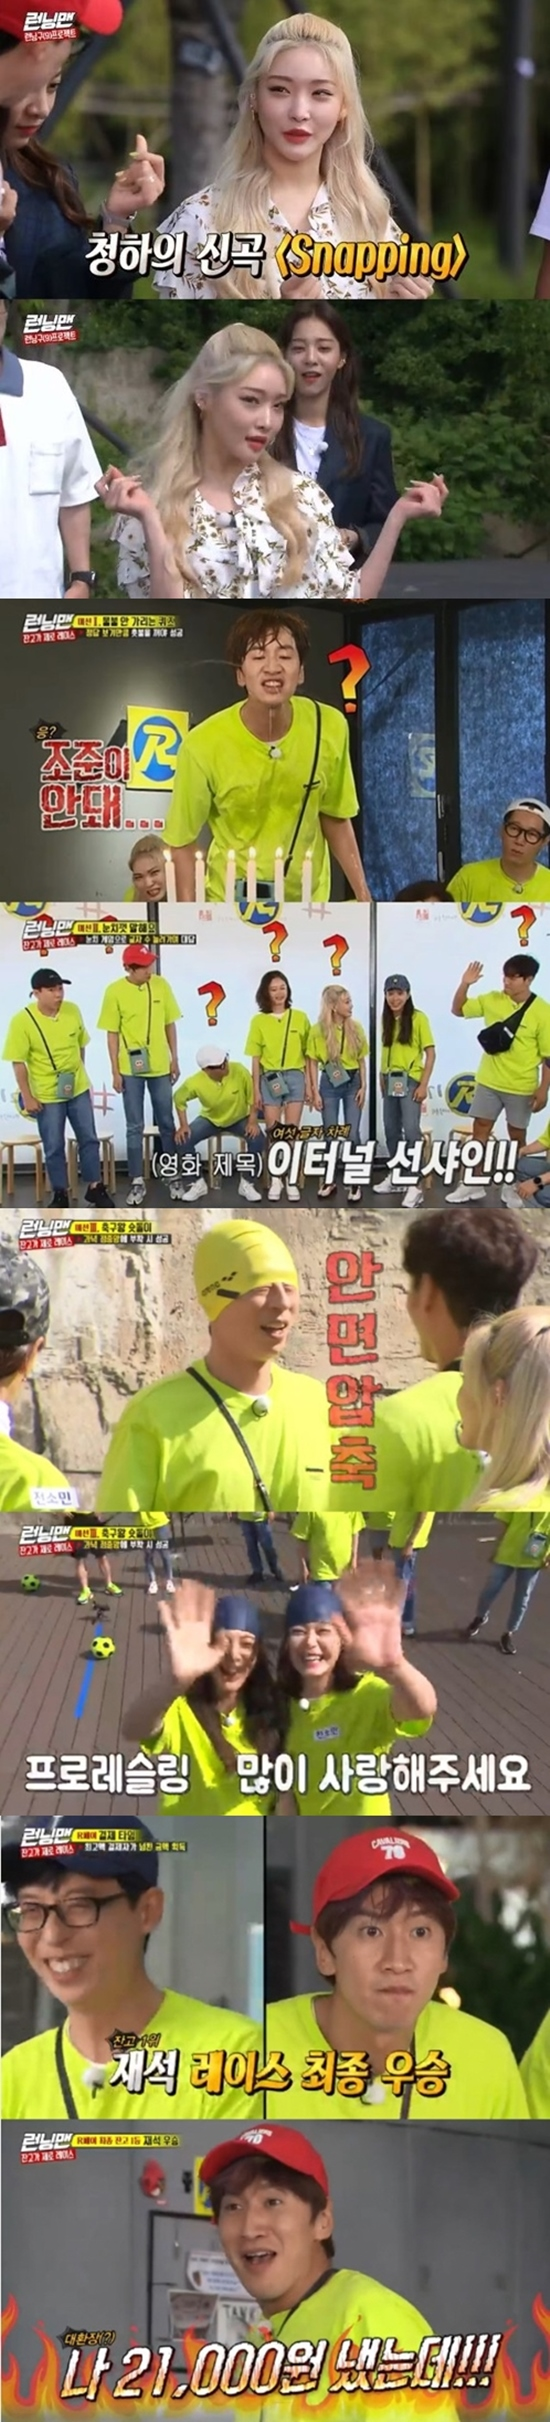 <p>Viewership survey Agency Nielsen Korea, according to the last 16 broadcast of SBS 'Running Man'is per minute, with a maximum application rate up to 8% soared, and the main advertising officials of the important indicators of '2049 target audience'is 4. 1%(NCR furniture viewership Part 2 standard)record by 'the king', 'his ears are donkey ears' etc and same time 1 ranked. Average viewership is part 1 of 5. 1%, 2 parts of 7%(NCR furniture viewership standards)were.</p><p>This day in the broadcast balance is zero raceis decorated with 'besties' singer young and actor Seol In-ah as a guest were together. This time in the race, the members of each of the 3 million original, which contains The Mission phone receives a payment. Health food restaurants and around food Payment you want as long as 'R page'to a non-public Payment and Payment after the final amount if in every round The Mission in foraging bracelet with one person the best to serve people who lack the amount split Payment becomes a must. However, the final amount of overflows if the top amount to embellish a person difference earn all of it.</p><p>This member is from the start a keen eye location operation waged, especially in the last round of the 'humiliation hat'up to that penalty was for. Unexpected big laugh in the middle, the Payment order is that each of the members of the extreme noticed the fight as a laugh, I found myself and this scene, per minute, with a maximum application rate of 8 percent, a record, and 'best 1 minute'is accounted for.</p><p>Meanwhile, Seol In-ah every round through a large Payment to the end 'grass and forage bracelet'water bomb penalty, and lets see this options for the last The Mission in full property to all the strategies unfolded, but the same strategy was also on the property thousand more were Yoo Jae-Suk in the slide and water bombs were fit for. Support analysis with Seol In-ah 'accompanied with a penalty on point and Seol In-ah, Lee Kwang-Soo with a penalty and Yoo 